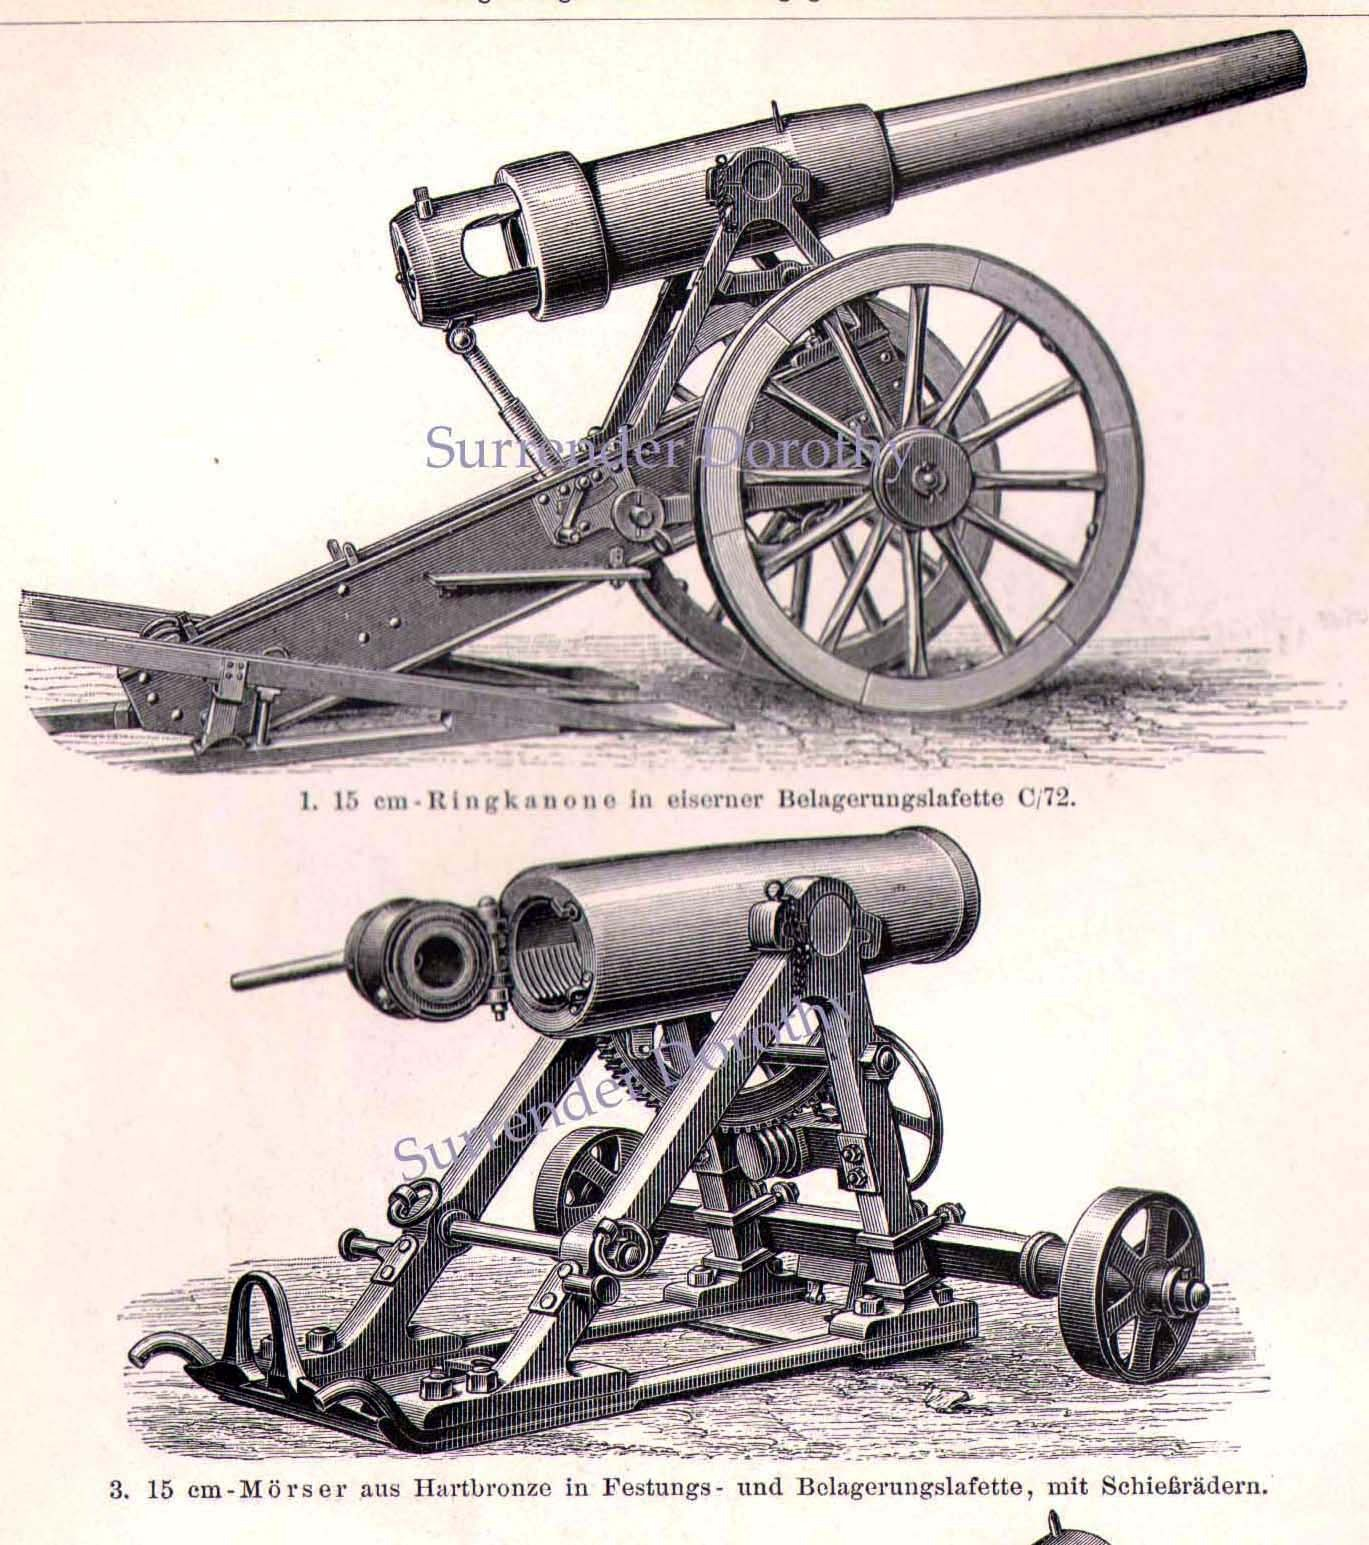 Drawn weapon victorian era Cannons Military  Era Victorian